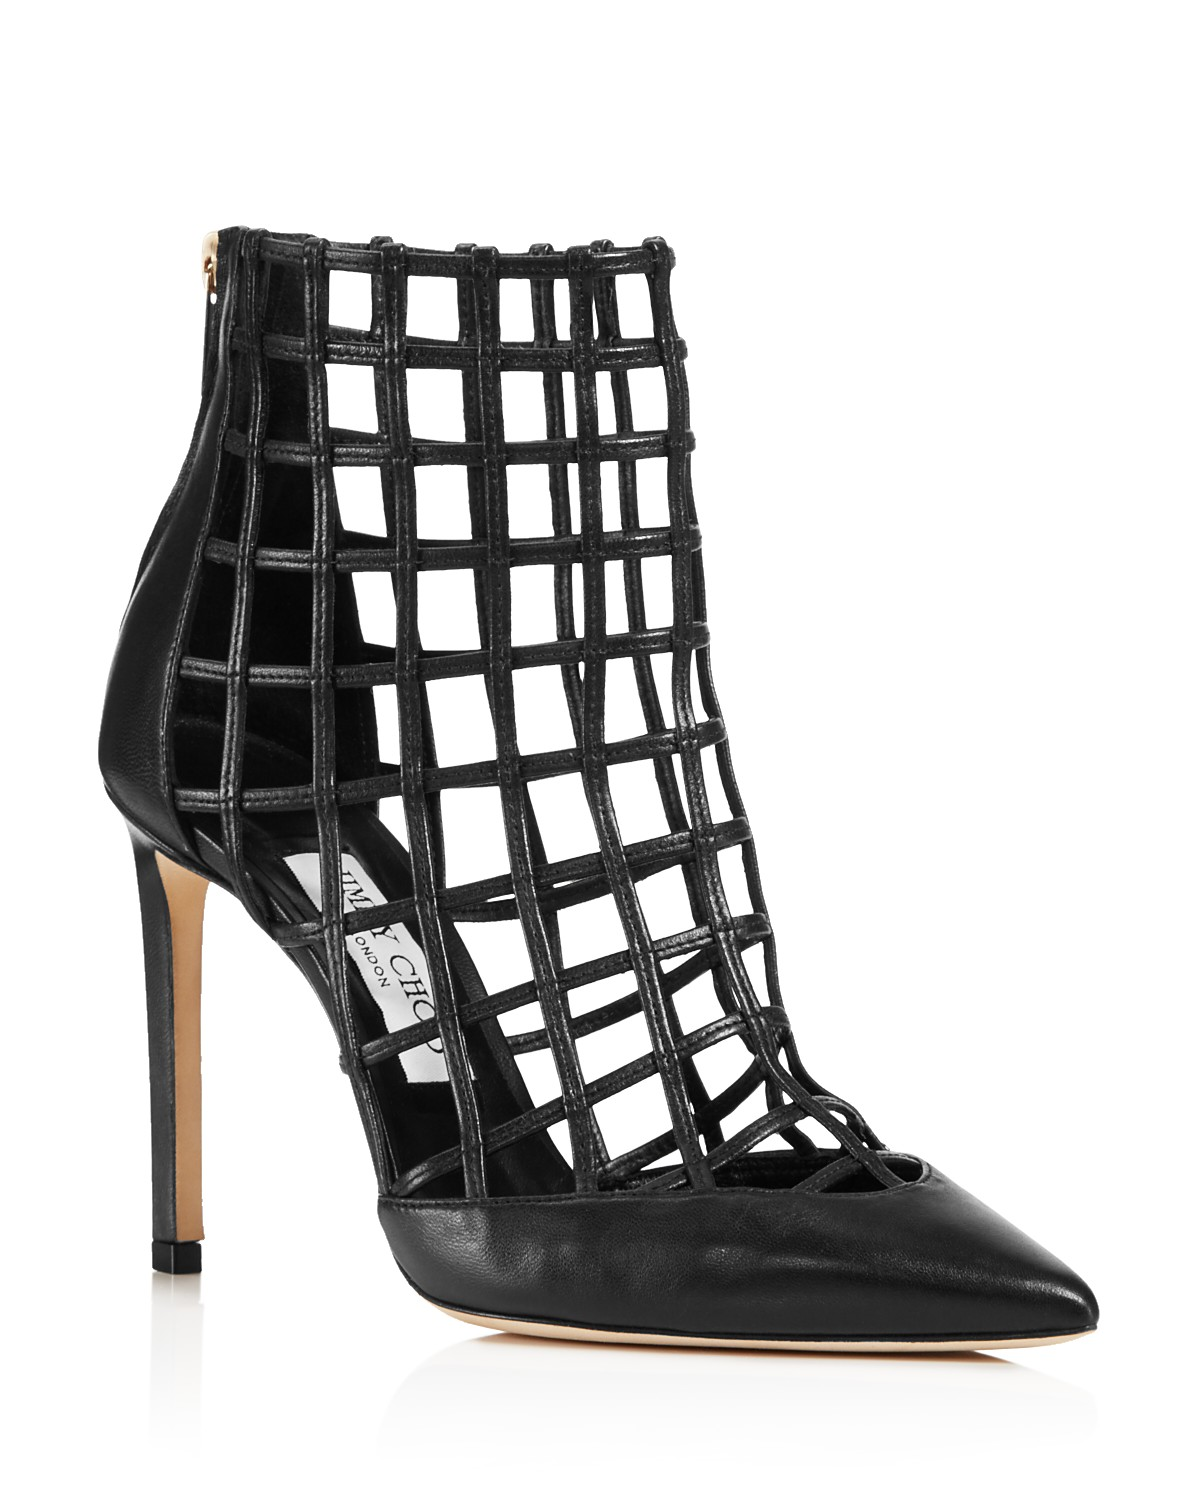 Jimmy choo Sheldon 100 caged leather boots